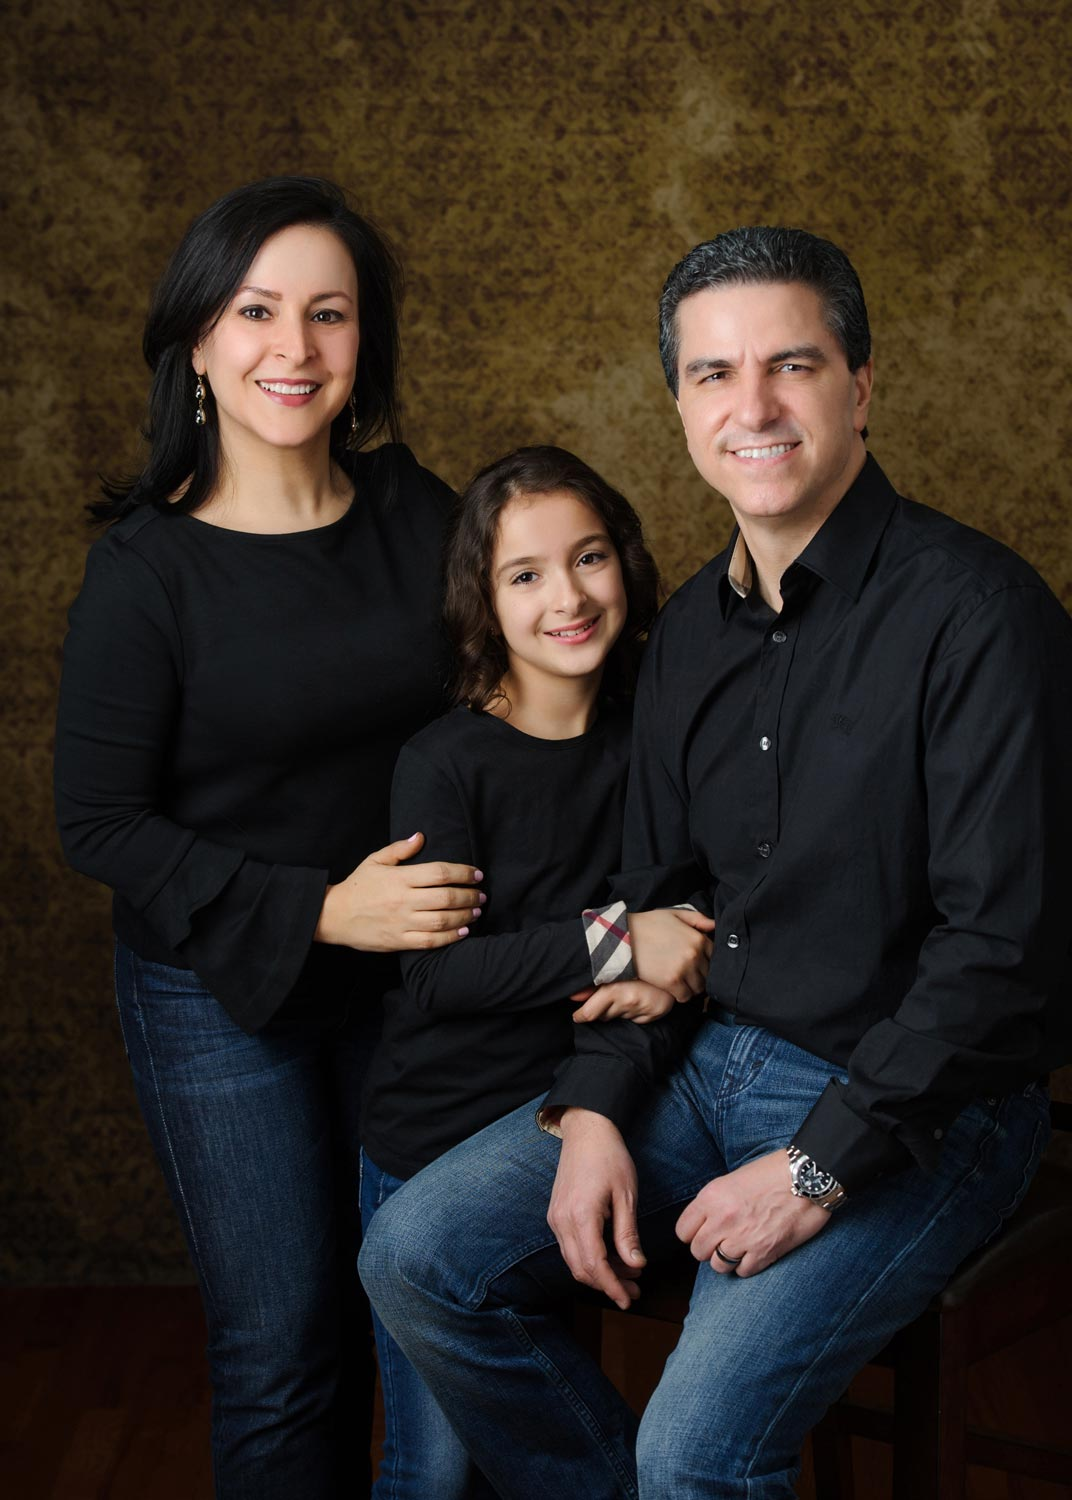 family_photography_by_Scott_Walz_studio_walz_Lexington_Ky059.jpg